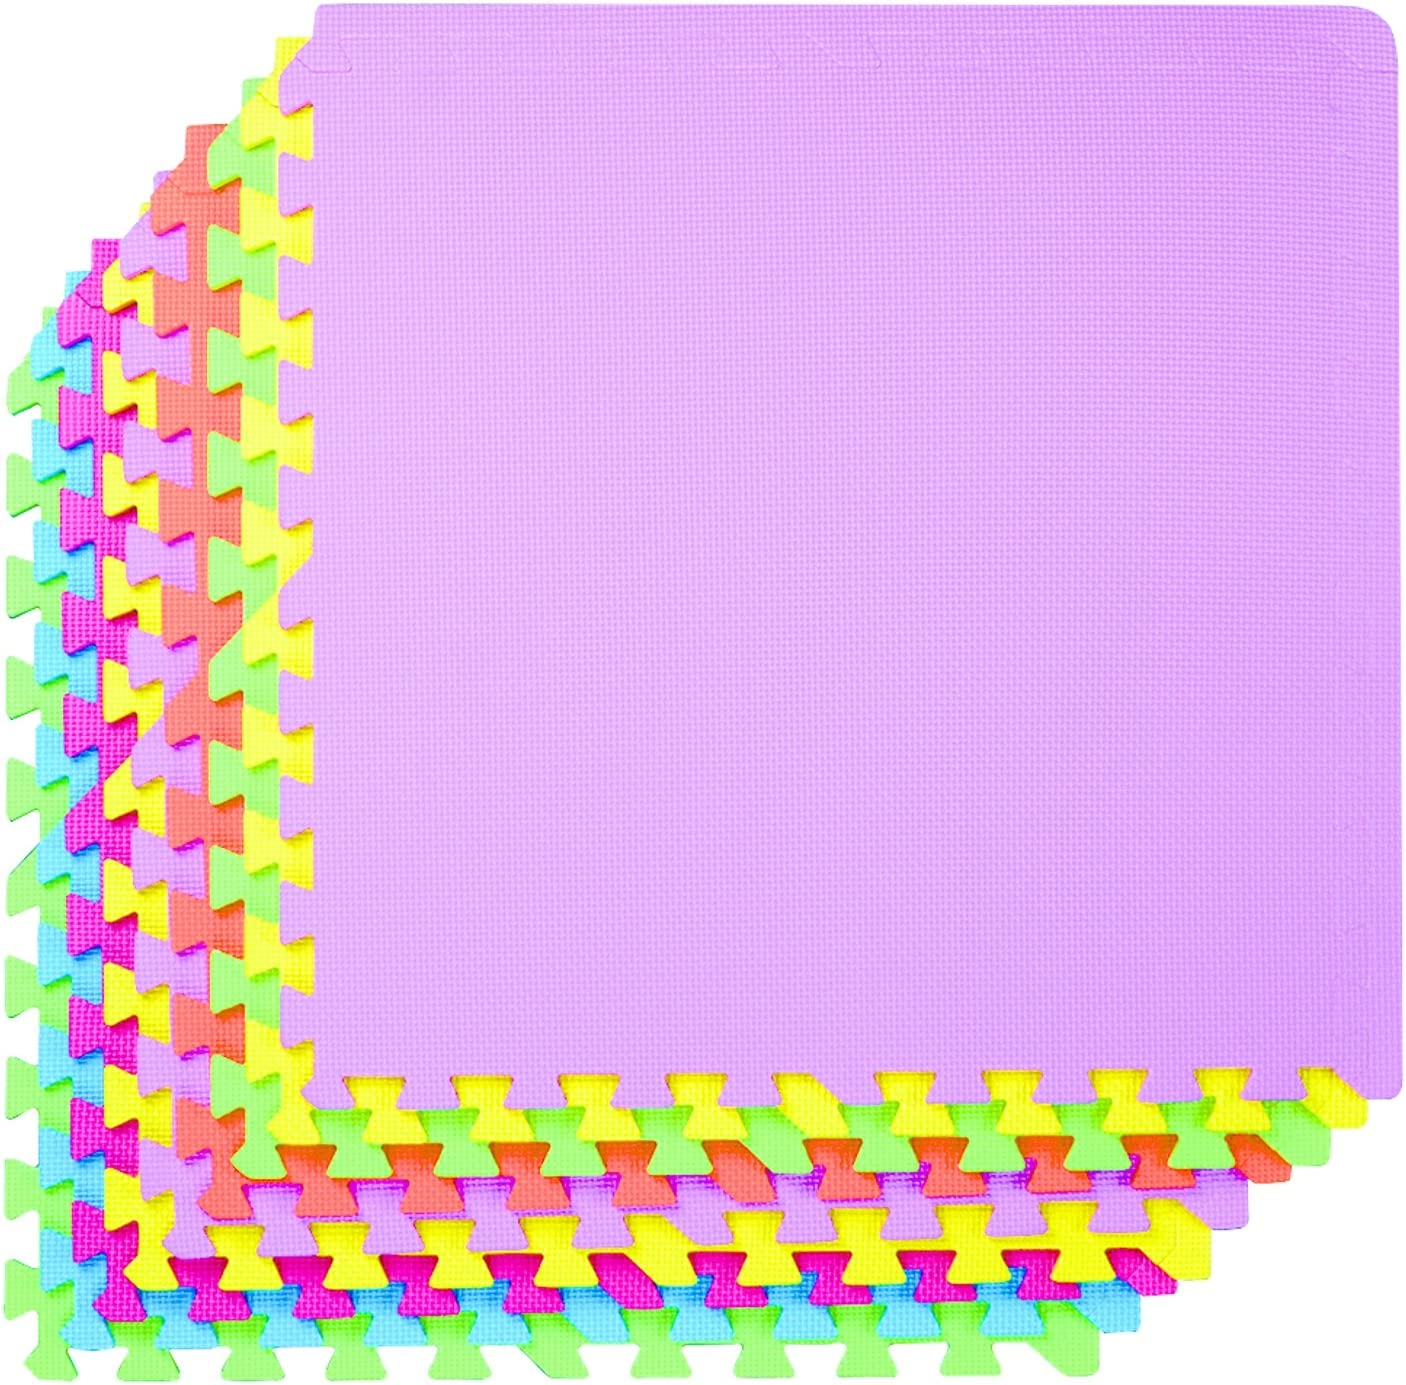 POCO DIVO Giant Play San Diego Mall Mat 5 ☆ popular Solid Color Floor Foam Excise